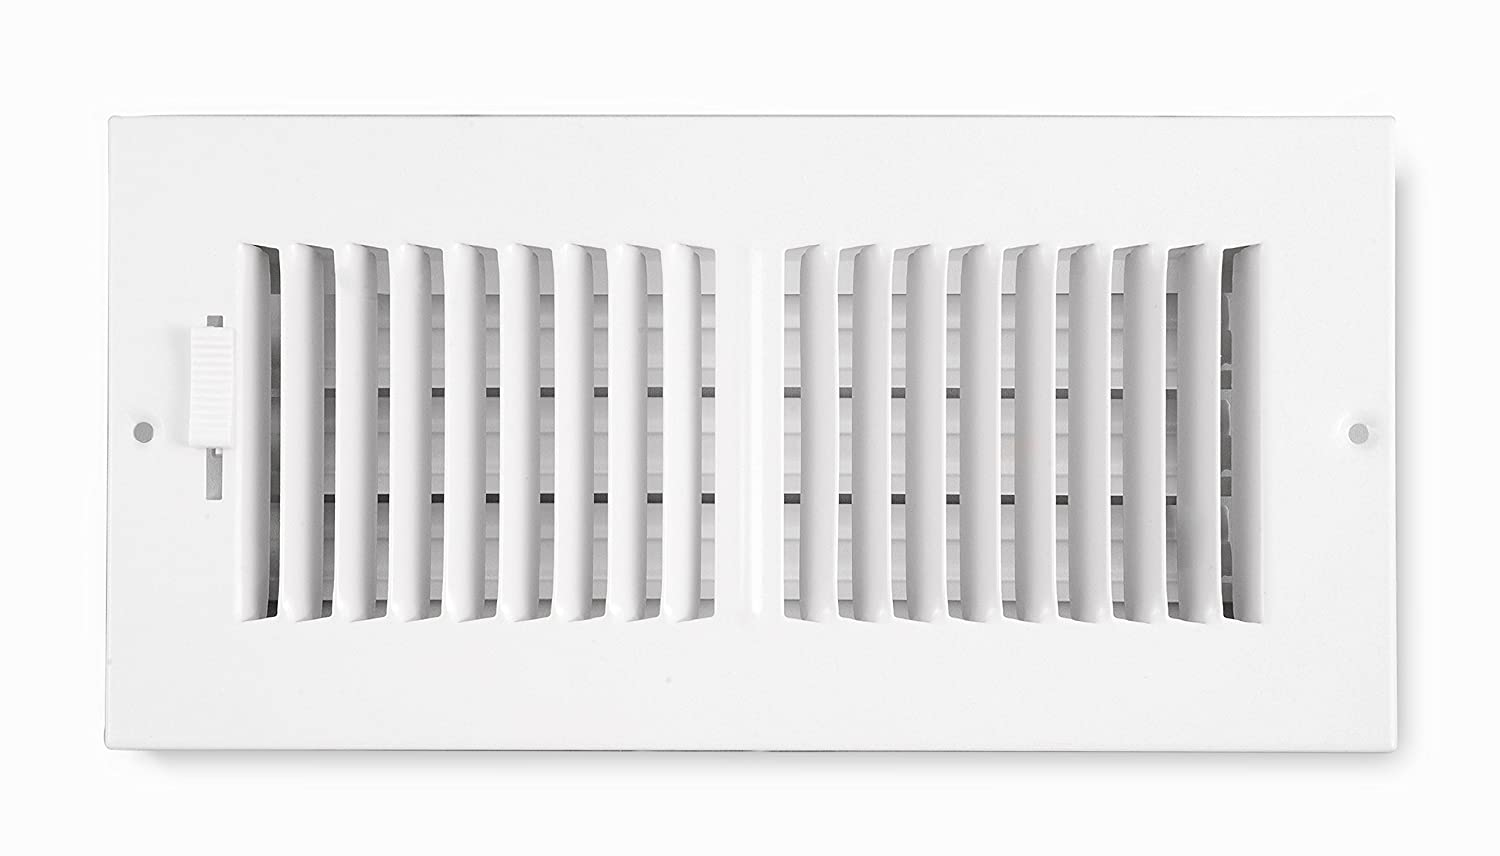 Accord ABSWWH2104 Sidewall/Ceiling Register with 2-Way Design, 10-Inch x 4-Inch(Duct Opening Measurements), White